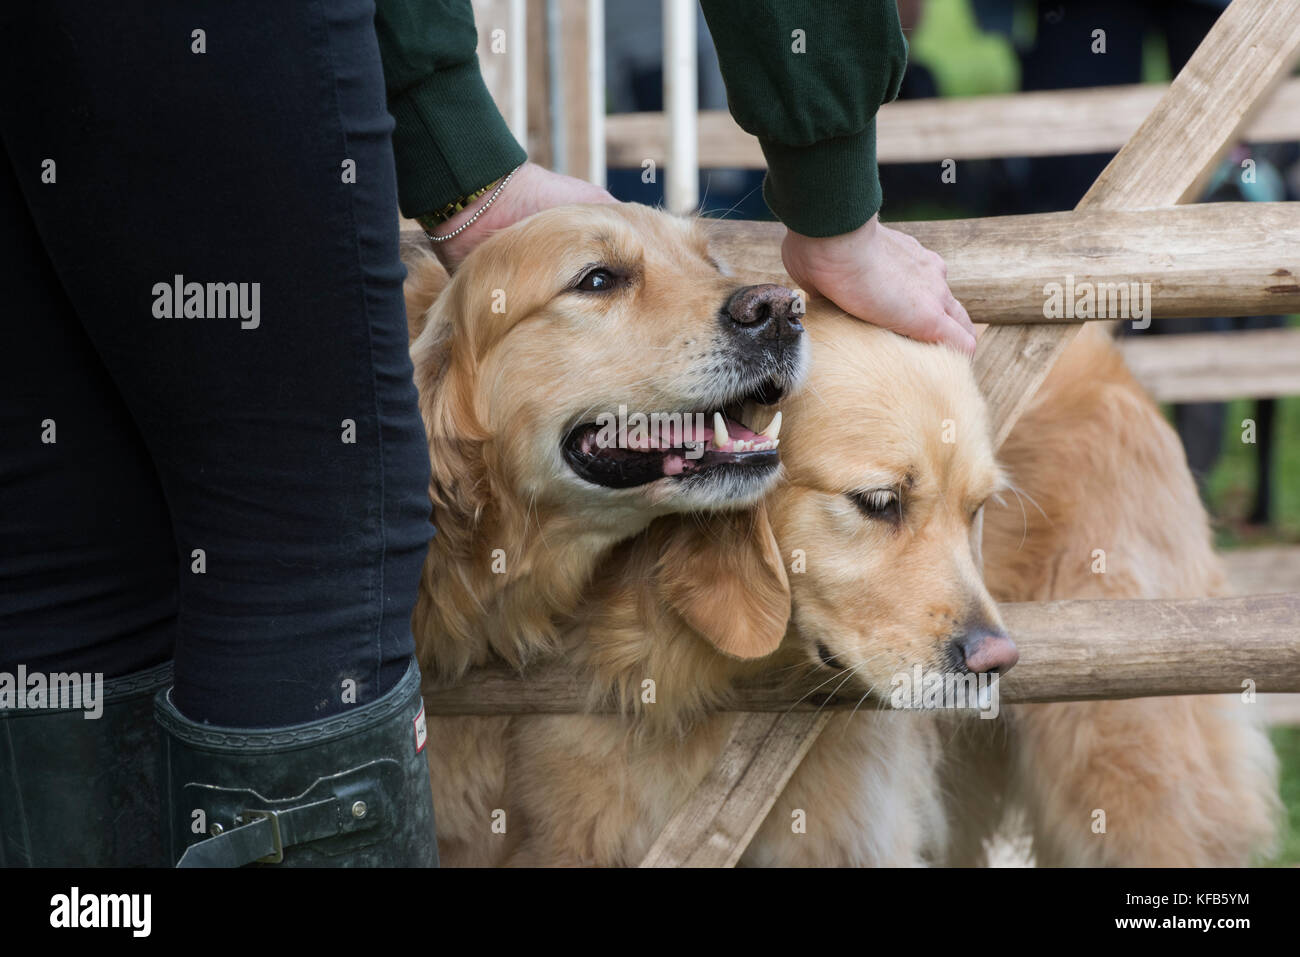 Golden retriever gun dogs at Weald and Downland open air museum, autumn countryside show, Singleton, Sussex, England - Stock Image